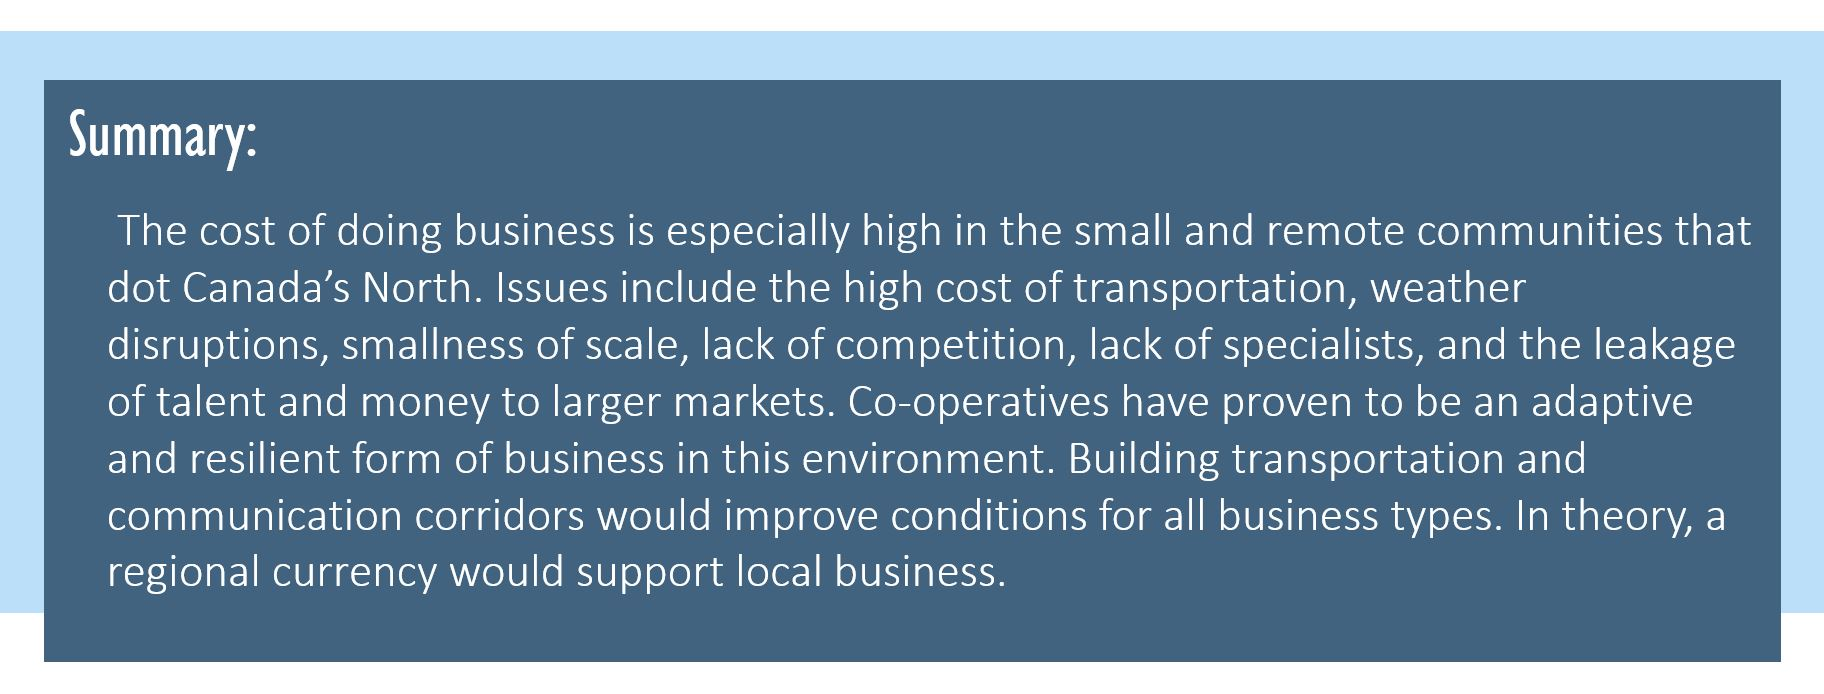 Summary: The cost of doing business is especially high in the small and remote communities that dot Canada's North. Issues include the high cost of transportation, weather disruptions, smallness of scale, lack of competition, lack of specialists, and the leakage of talent and money to larger markets. Co-operatives have proven to be an adaptive and resilient form of business in this environment. Building transportation and communication corridors would improve conditions for all business types. In theory, a regional currency would support local business.